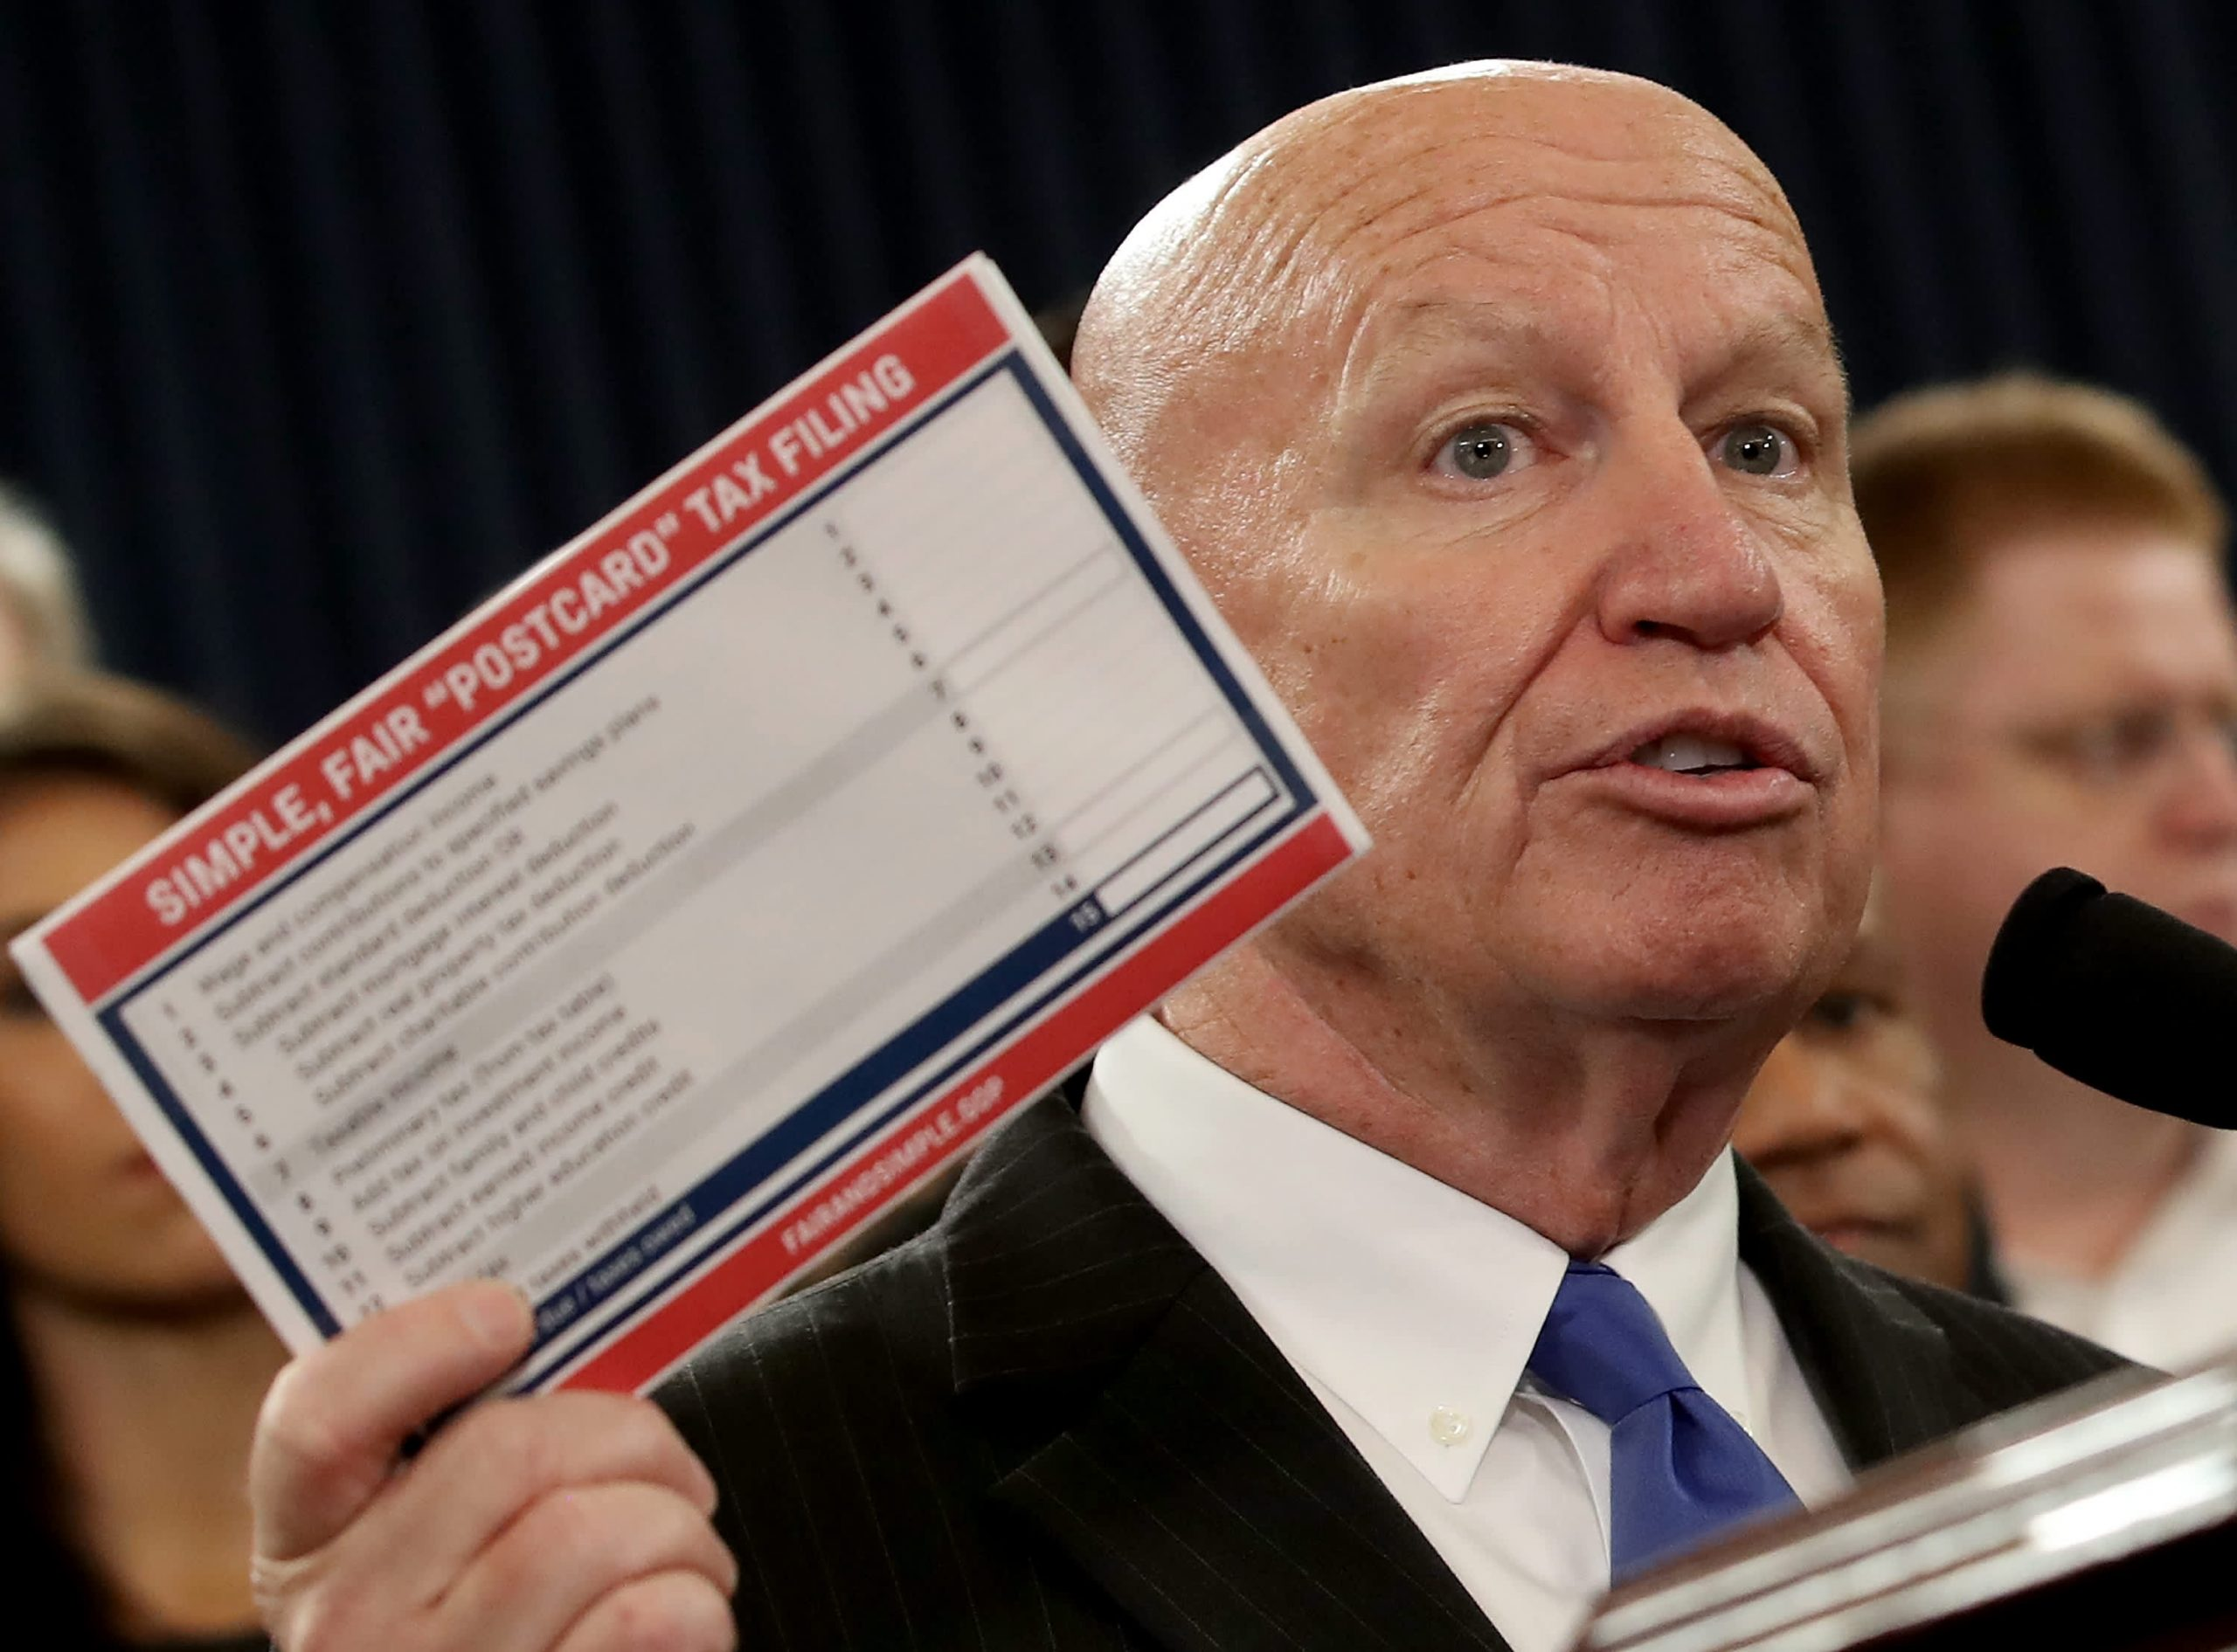 Big fight brewing, Kevin Brady says